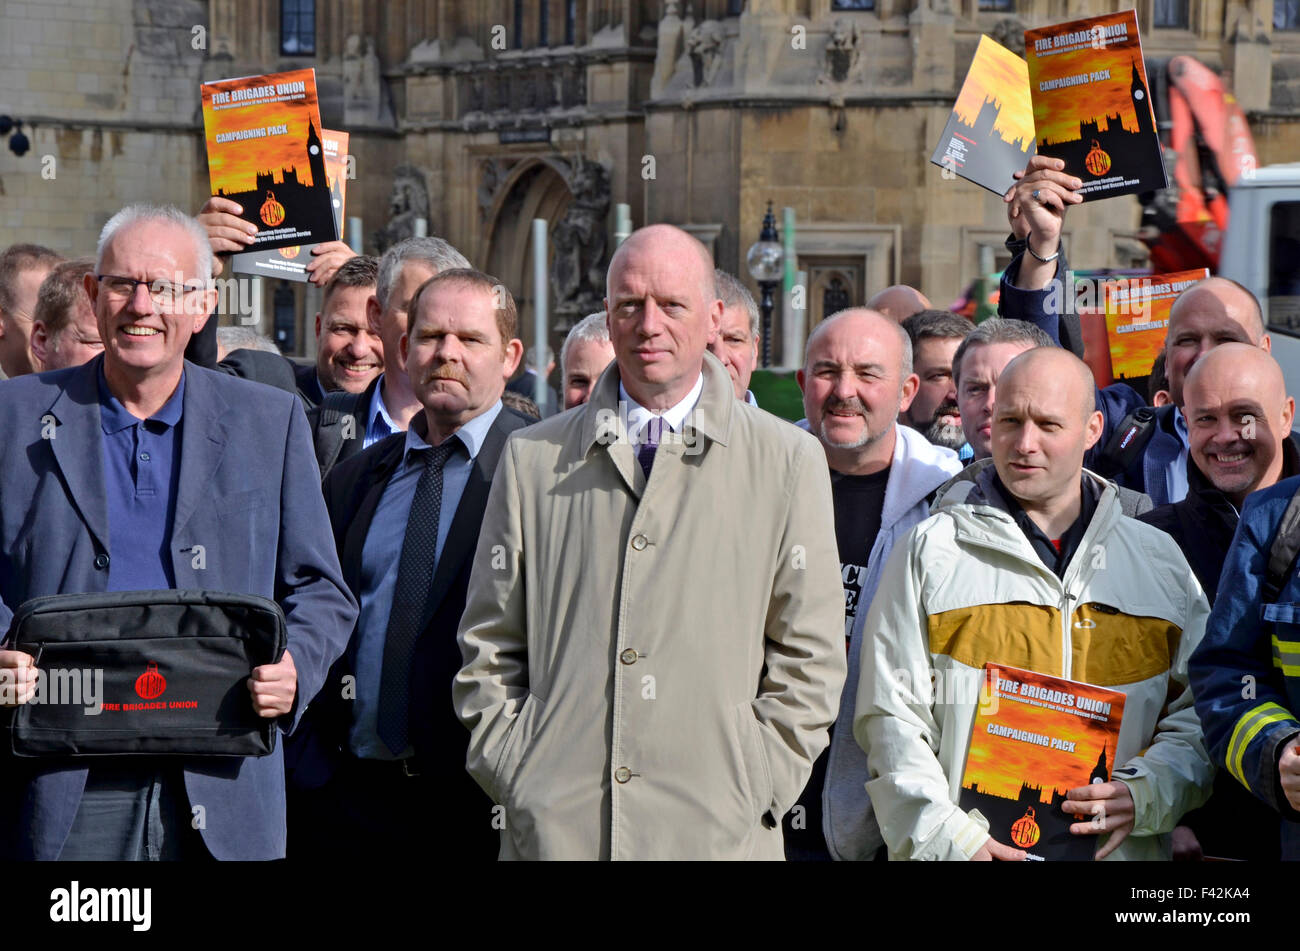 London, UK. 14th October, 2015. Matt Wrack and members of the Fire Brigade's Union prepare to lobby Parliament - Stock Image